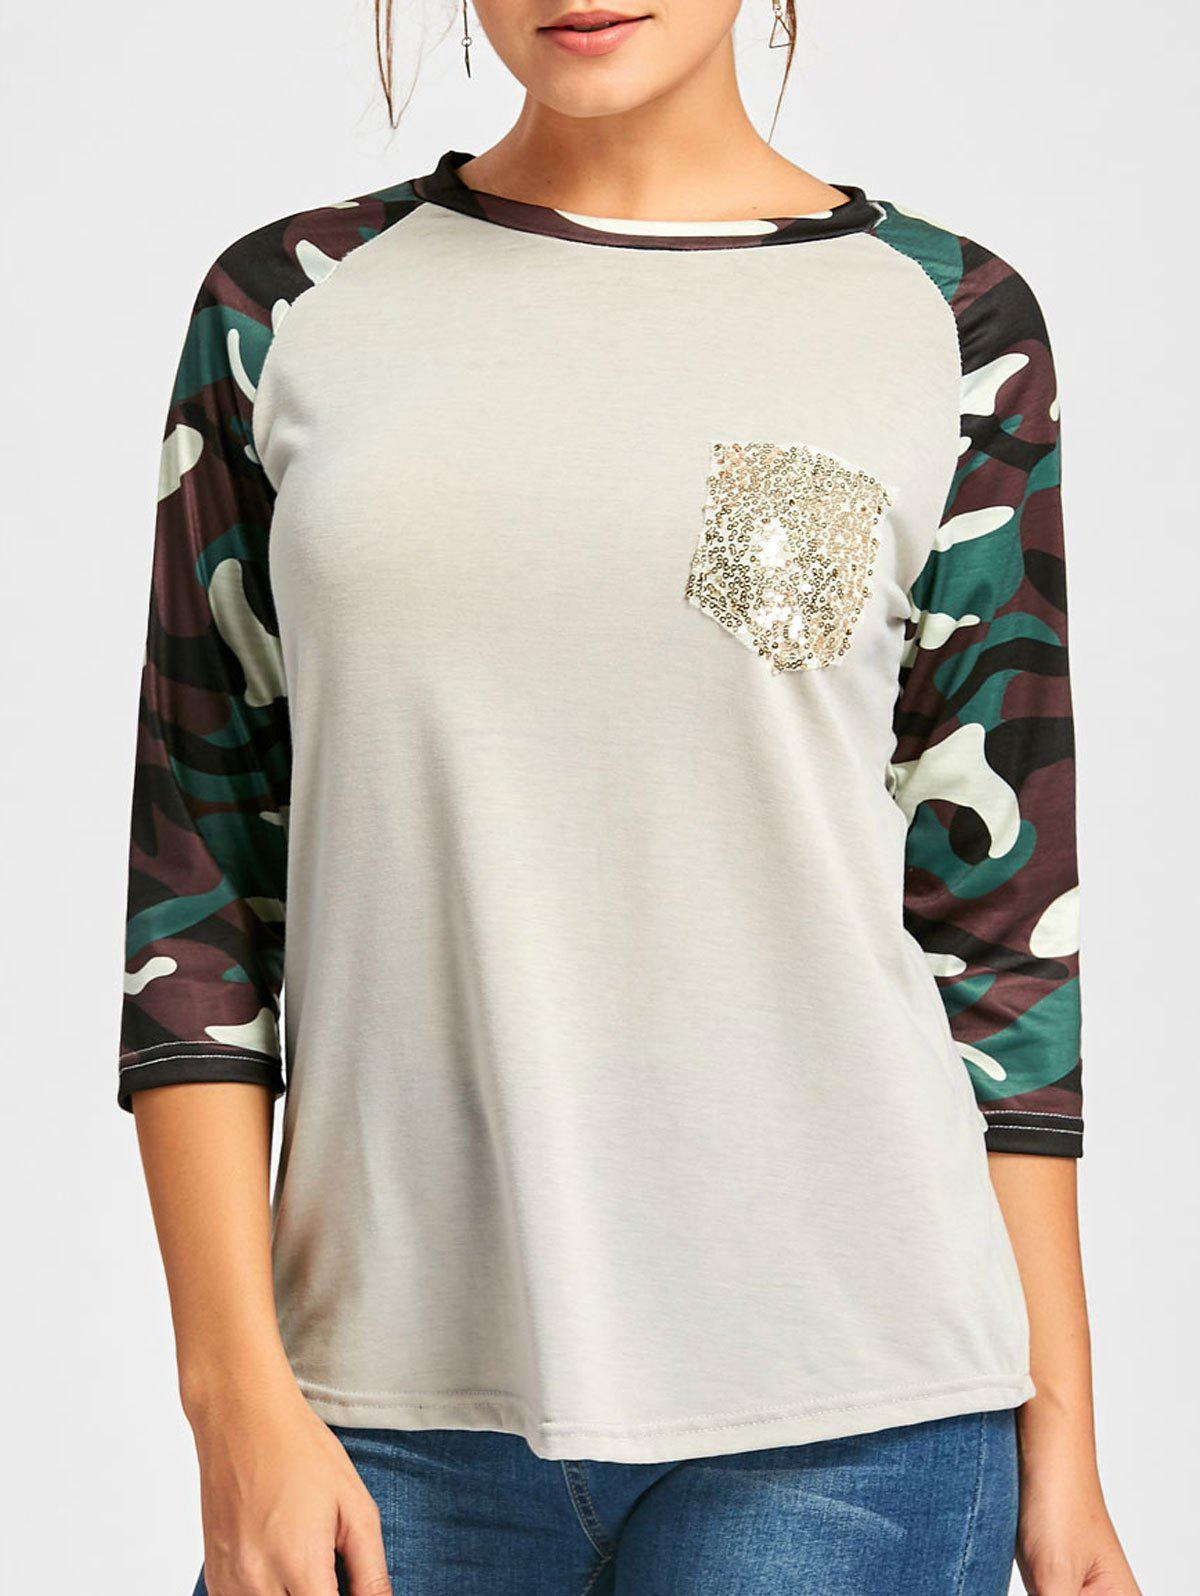 Raglan Sleeve Camo Sequin Pocket Tee - LIGHT GRAY S